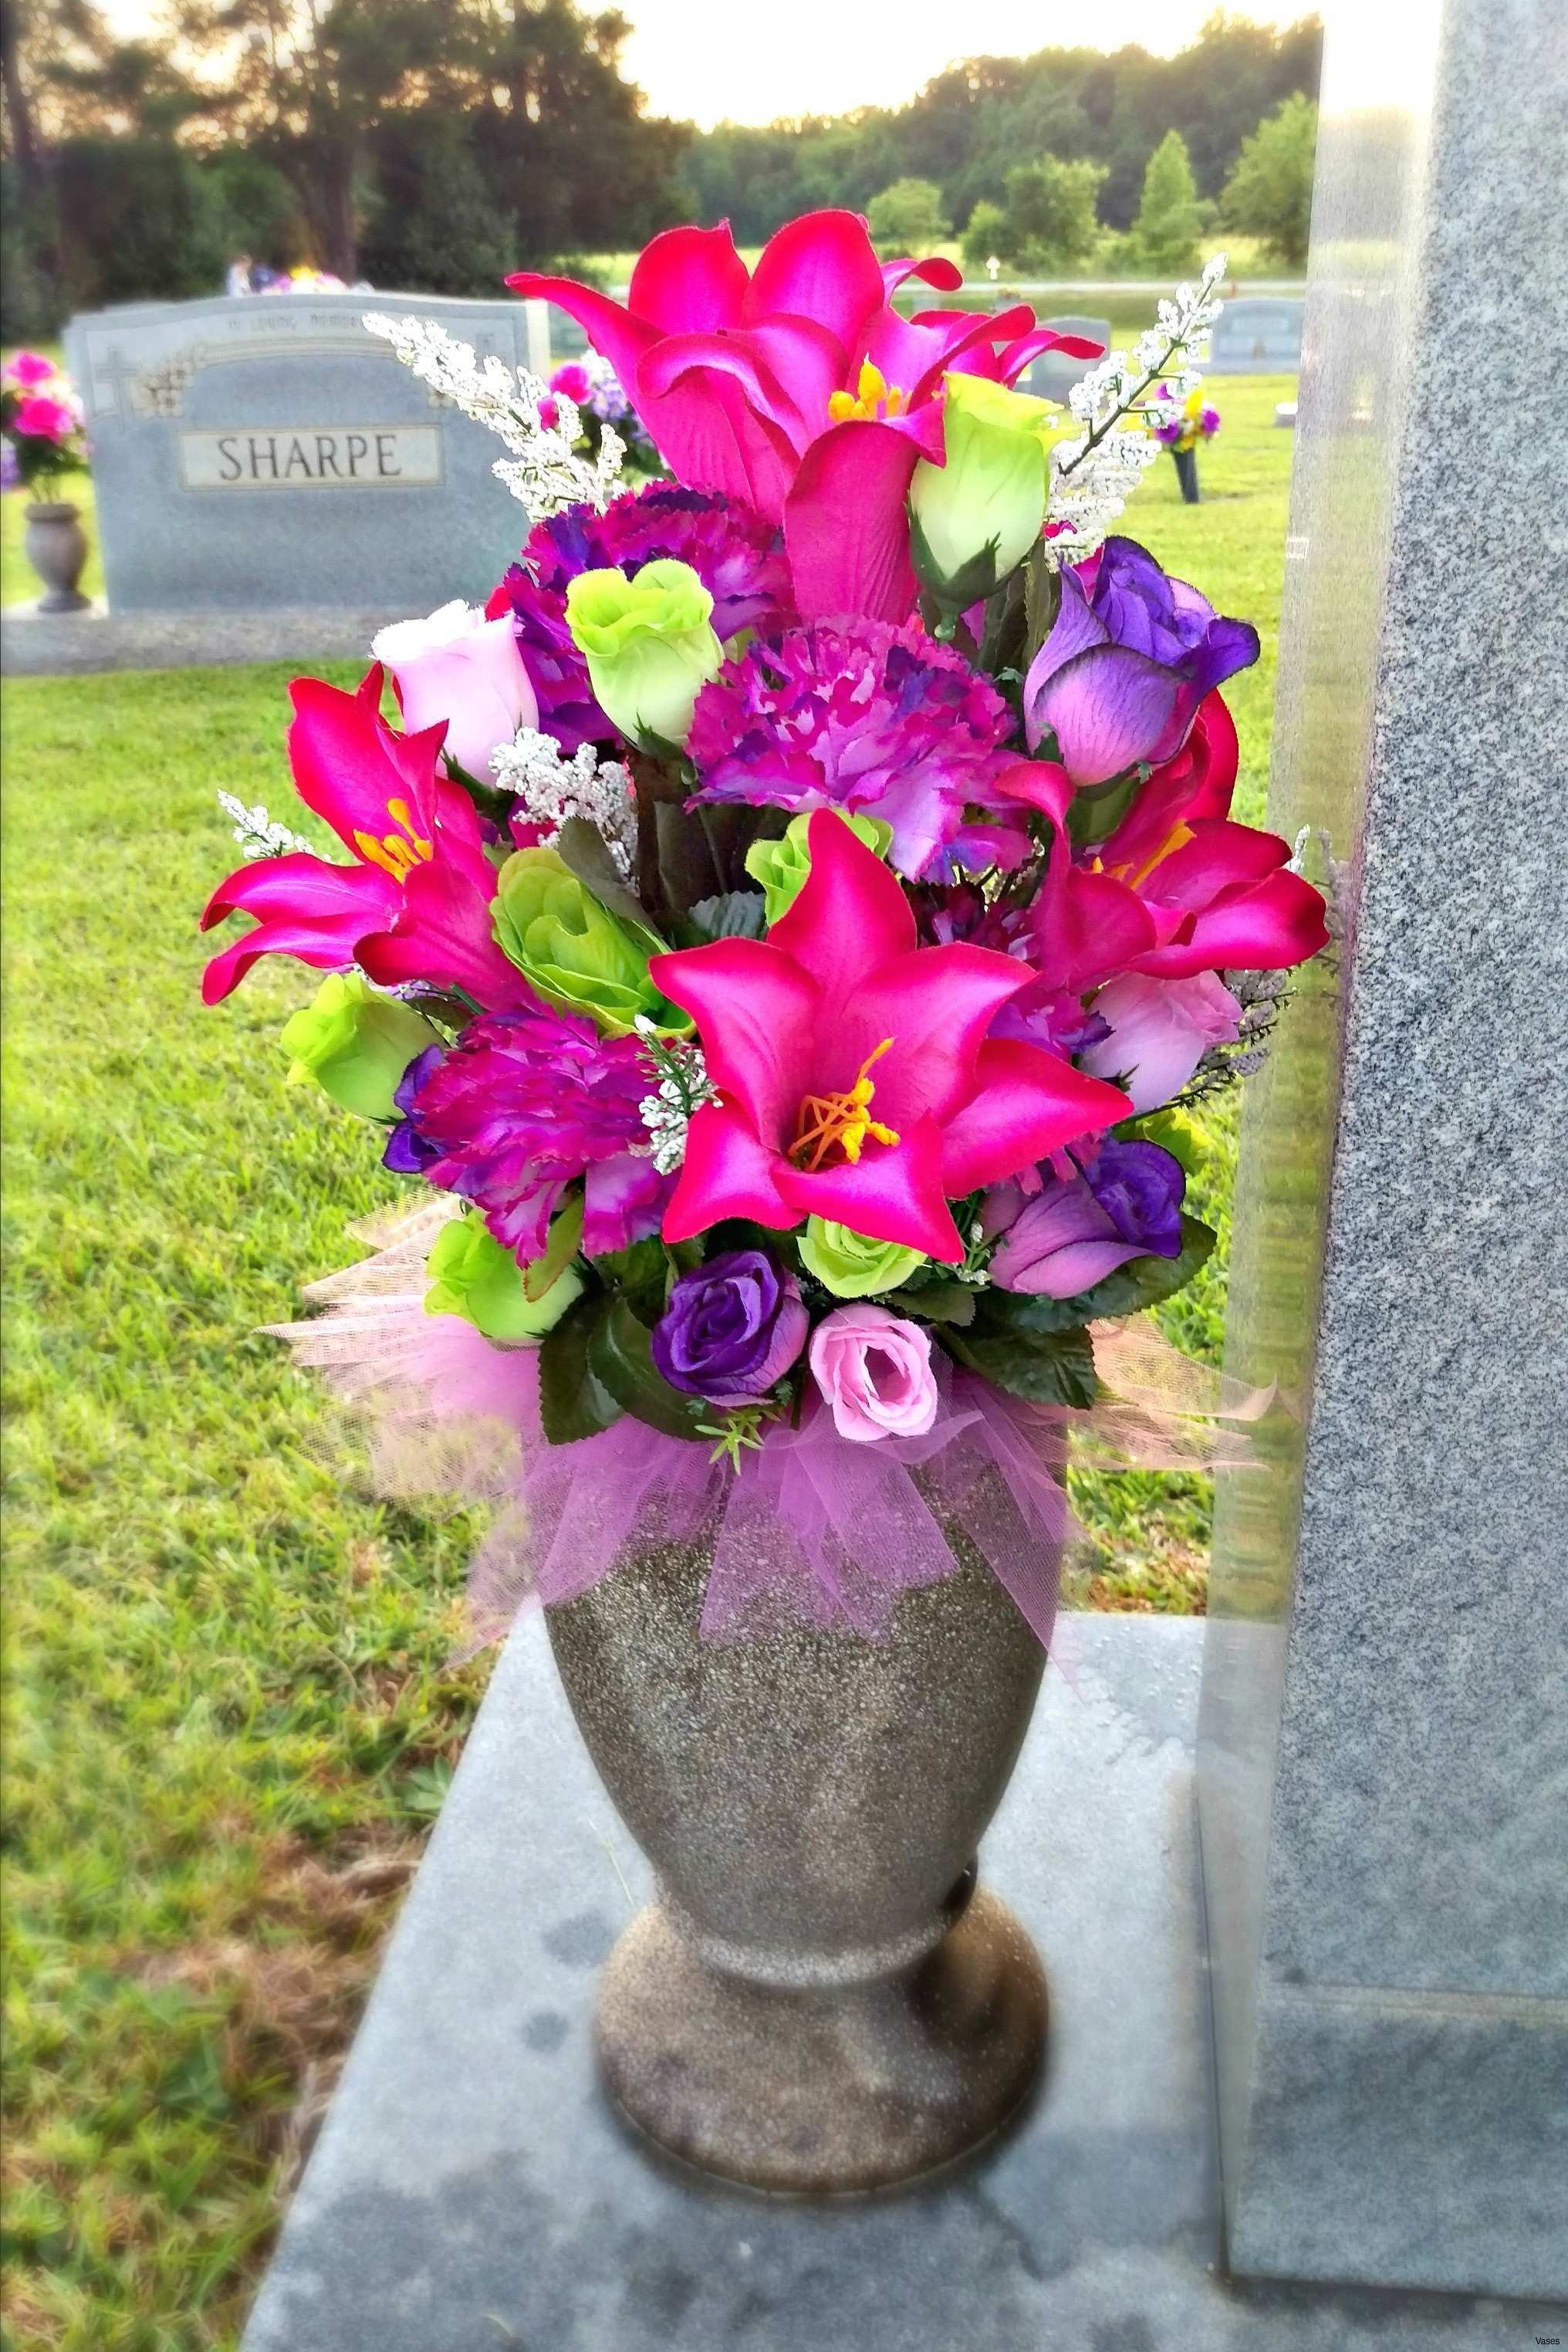 vase with white roses of buy rose bushes best of vases grave flower vase cemetery pertaining to buy rose bushes best of vases grave flower vase cemetery informationi 0d in ground holders